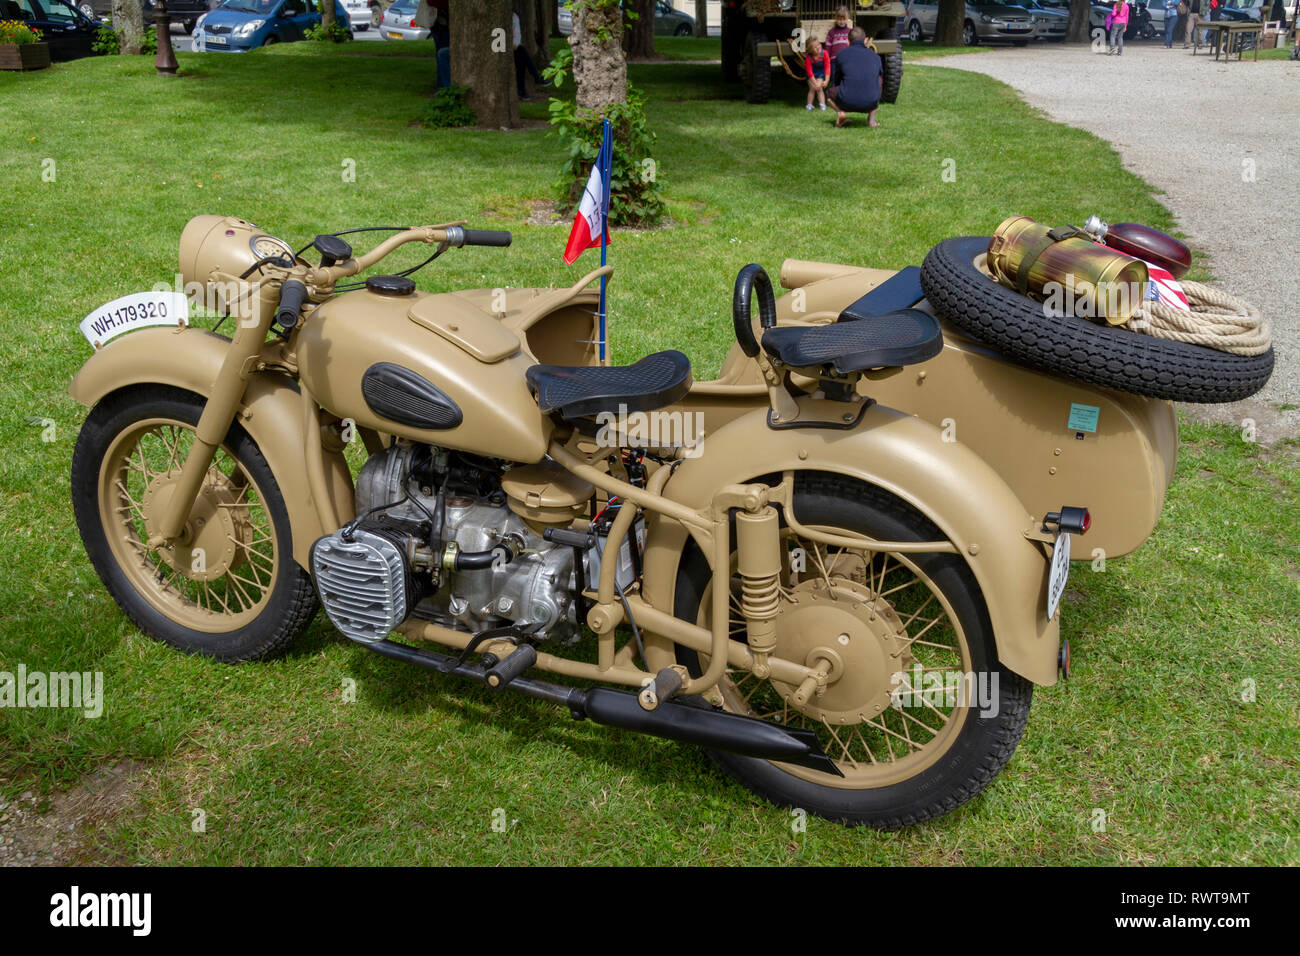 German World War Two motorcycle with sidecar (Bmw R75) in Sainte-Marie-du-Mont, Normandy, Manche, France, in June 2014. Stock Photo